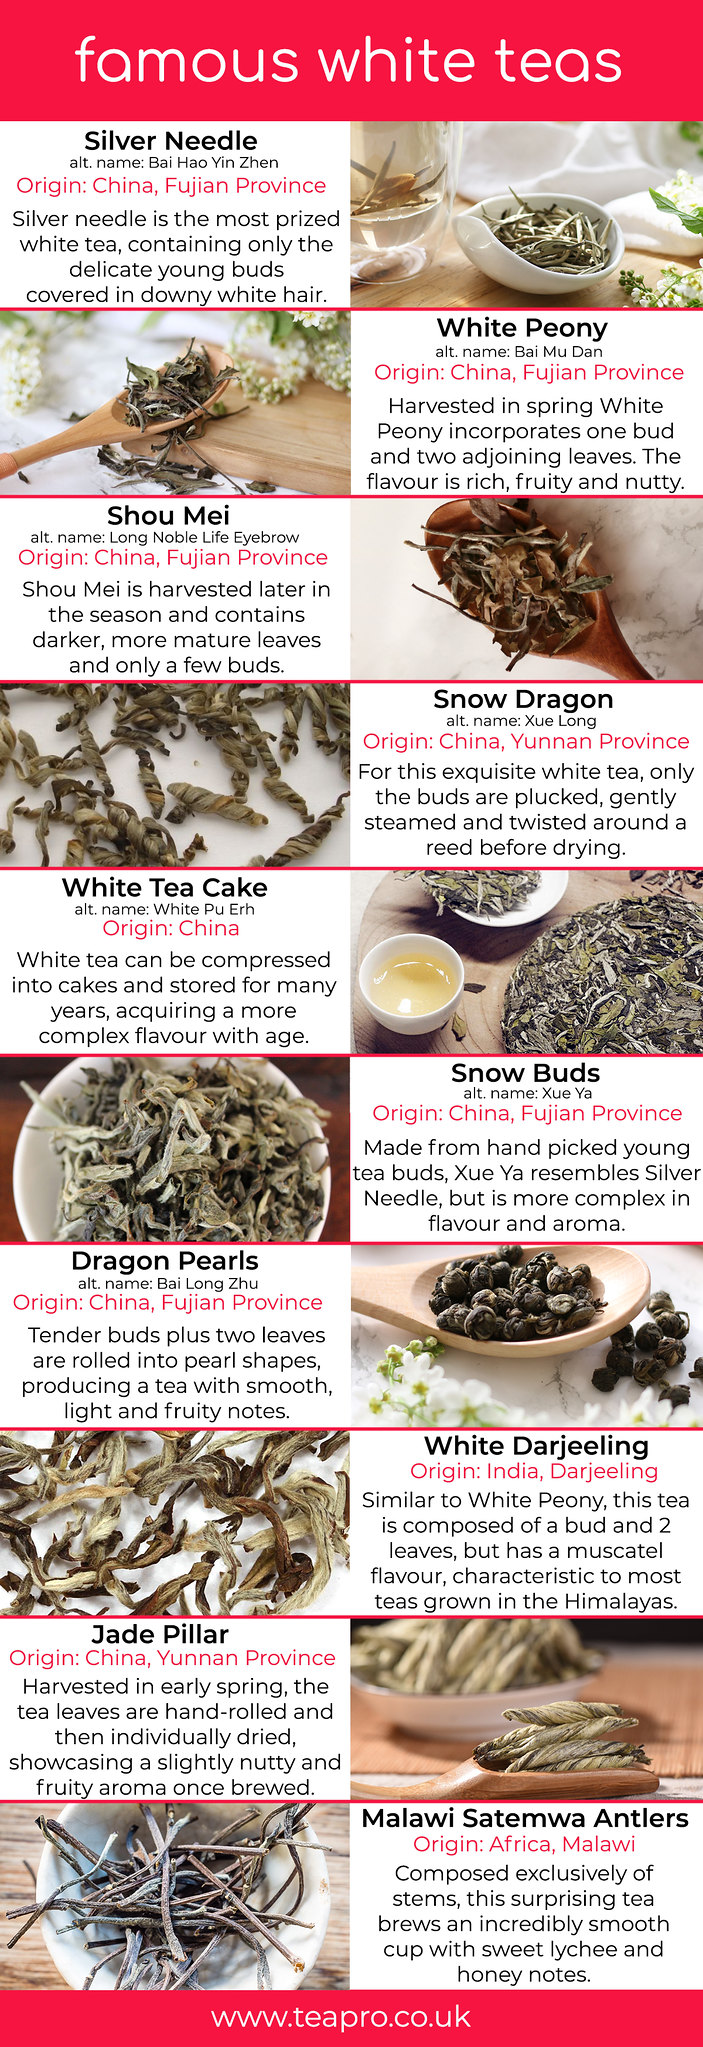 Famous White Tea varieties Teapro